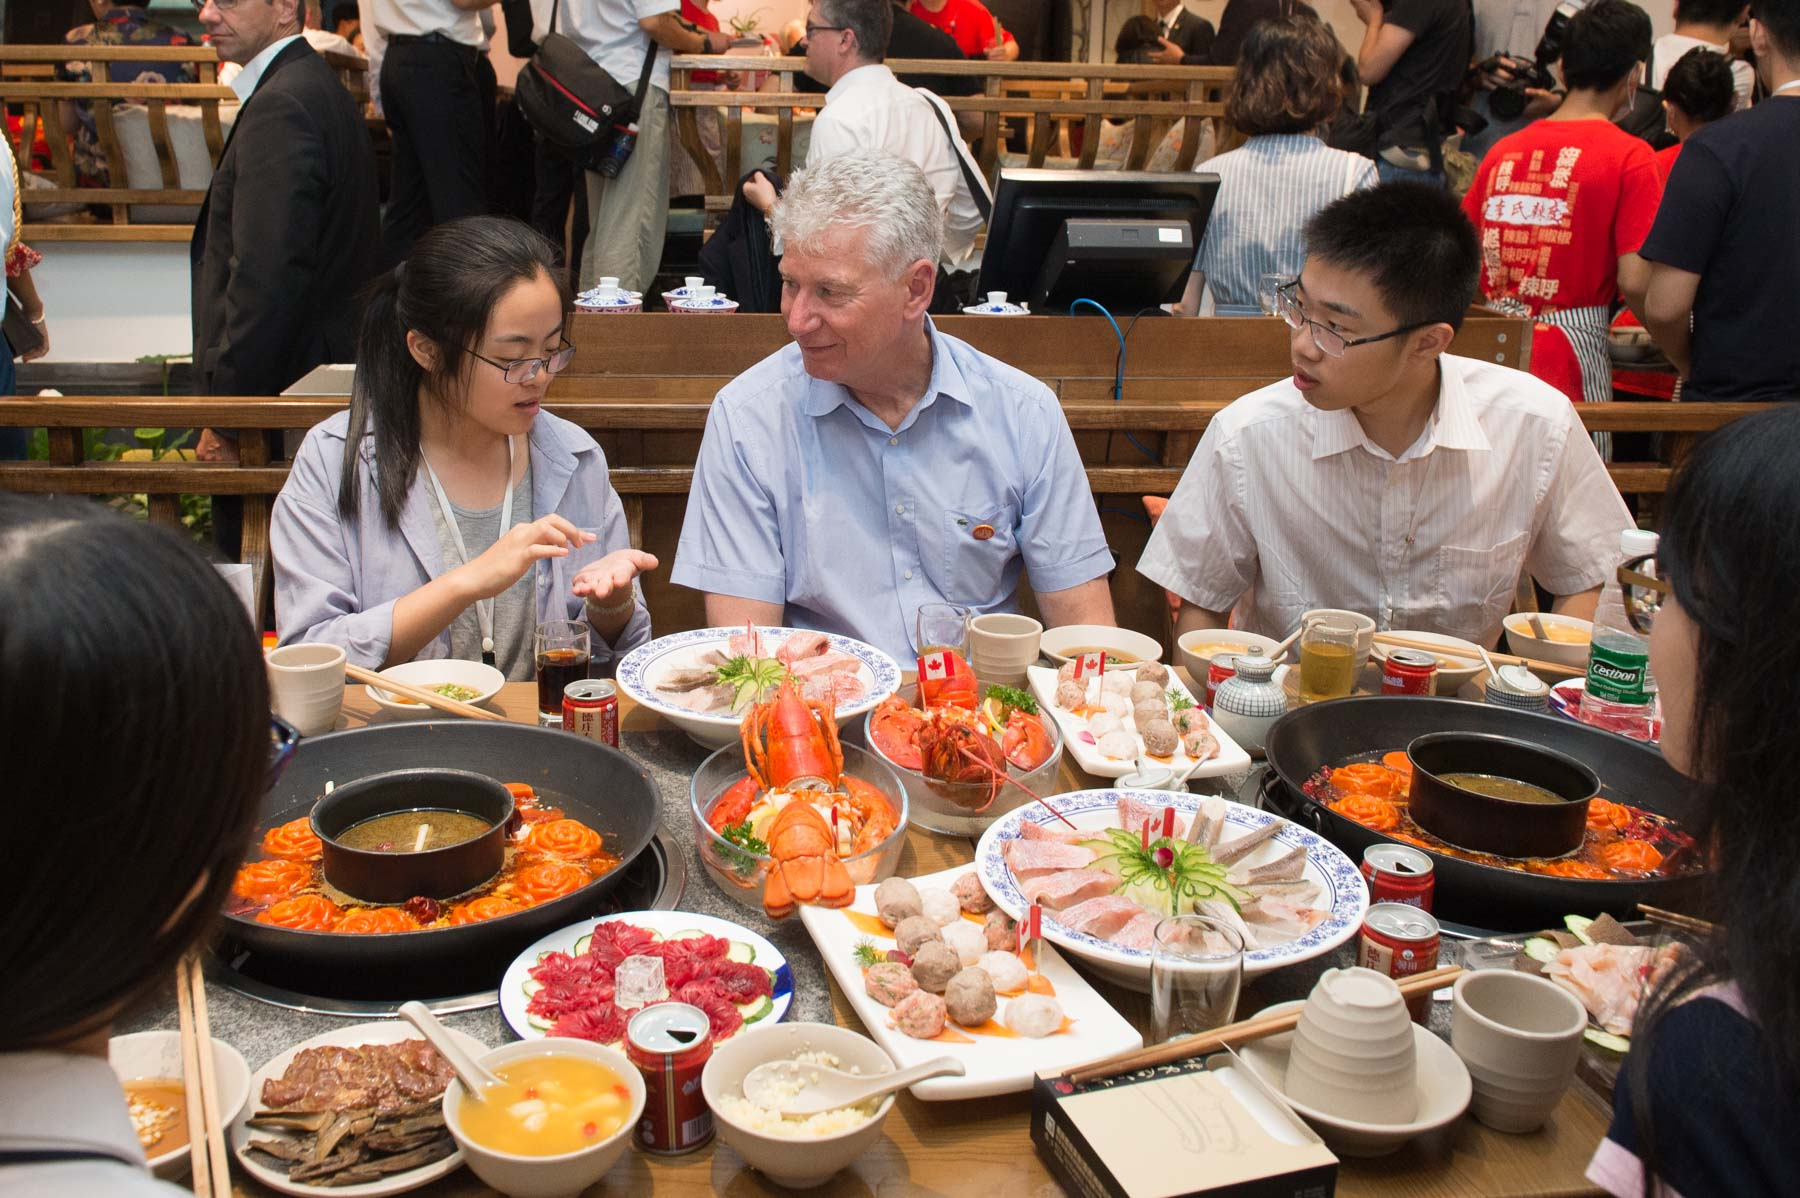 Several local hotpot restaurants, including the venue for this event, have opened branches in Canada. Mr. Stewart Beck, President and Chief Executive Officer of the Asia Pacific Foundation of Canada enjoyed his dinner with students.